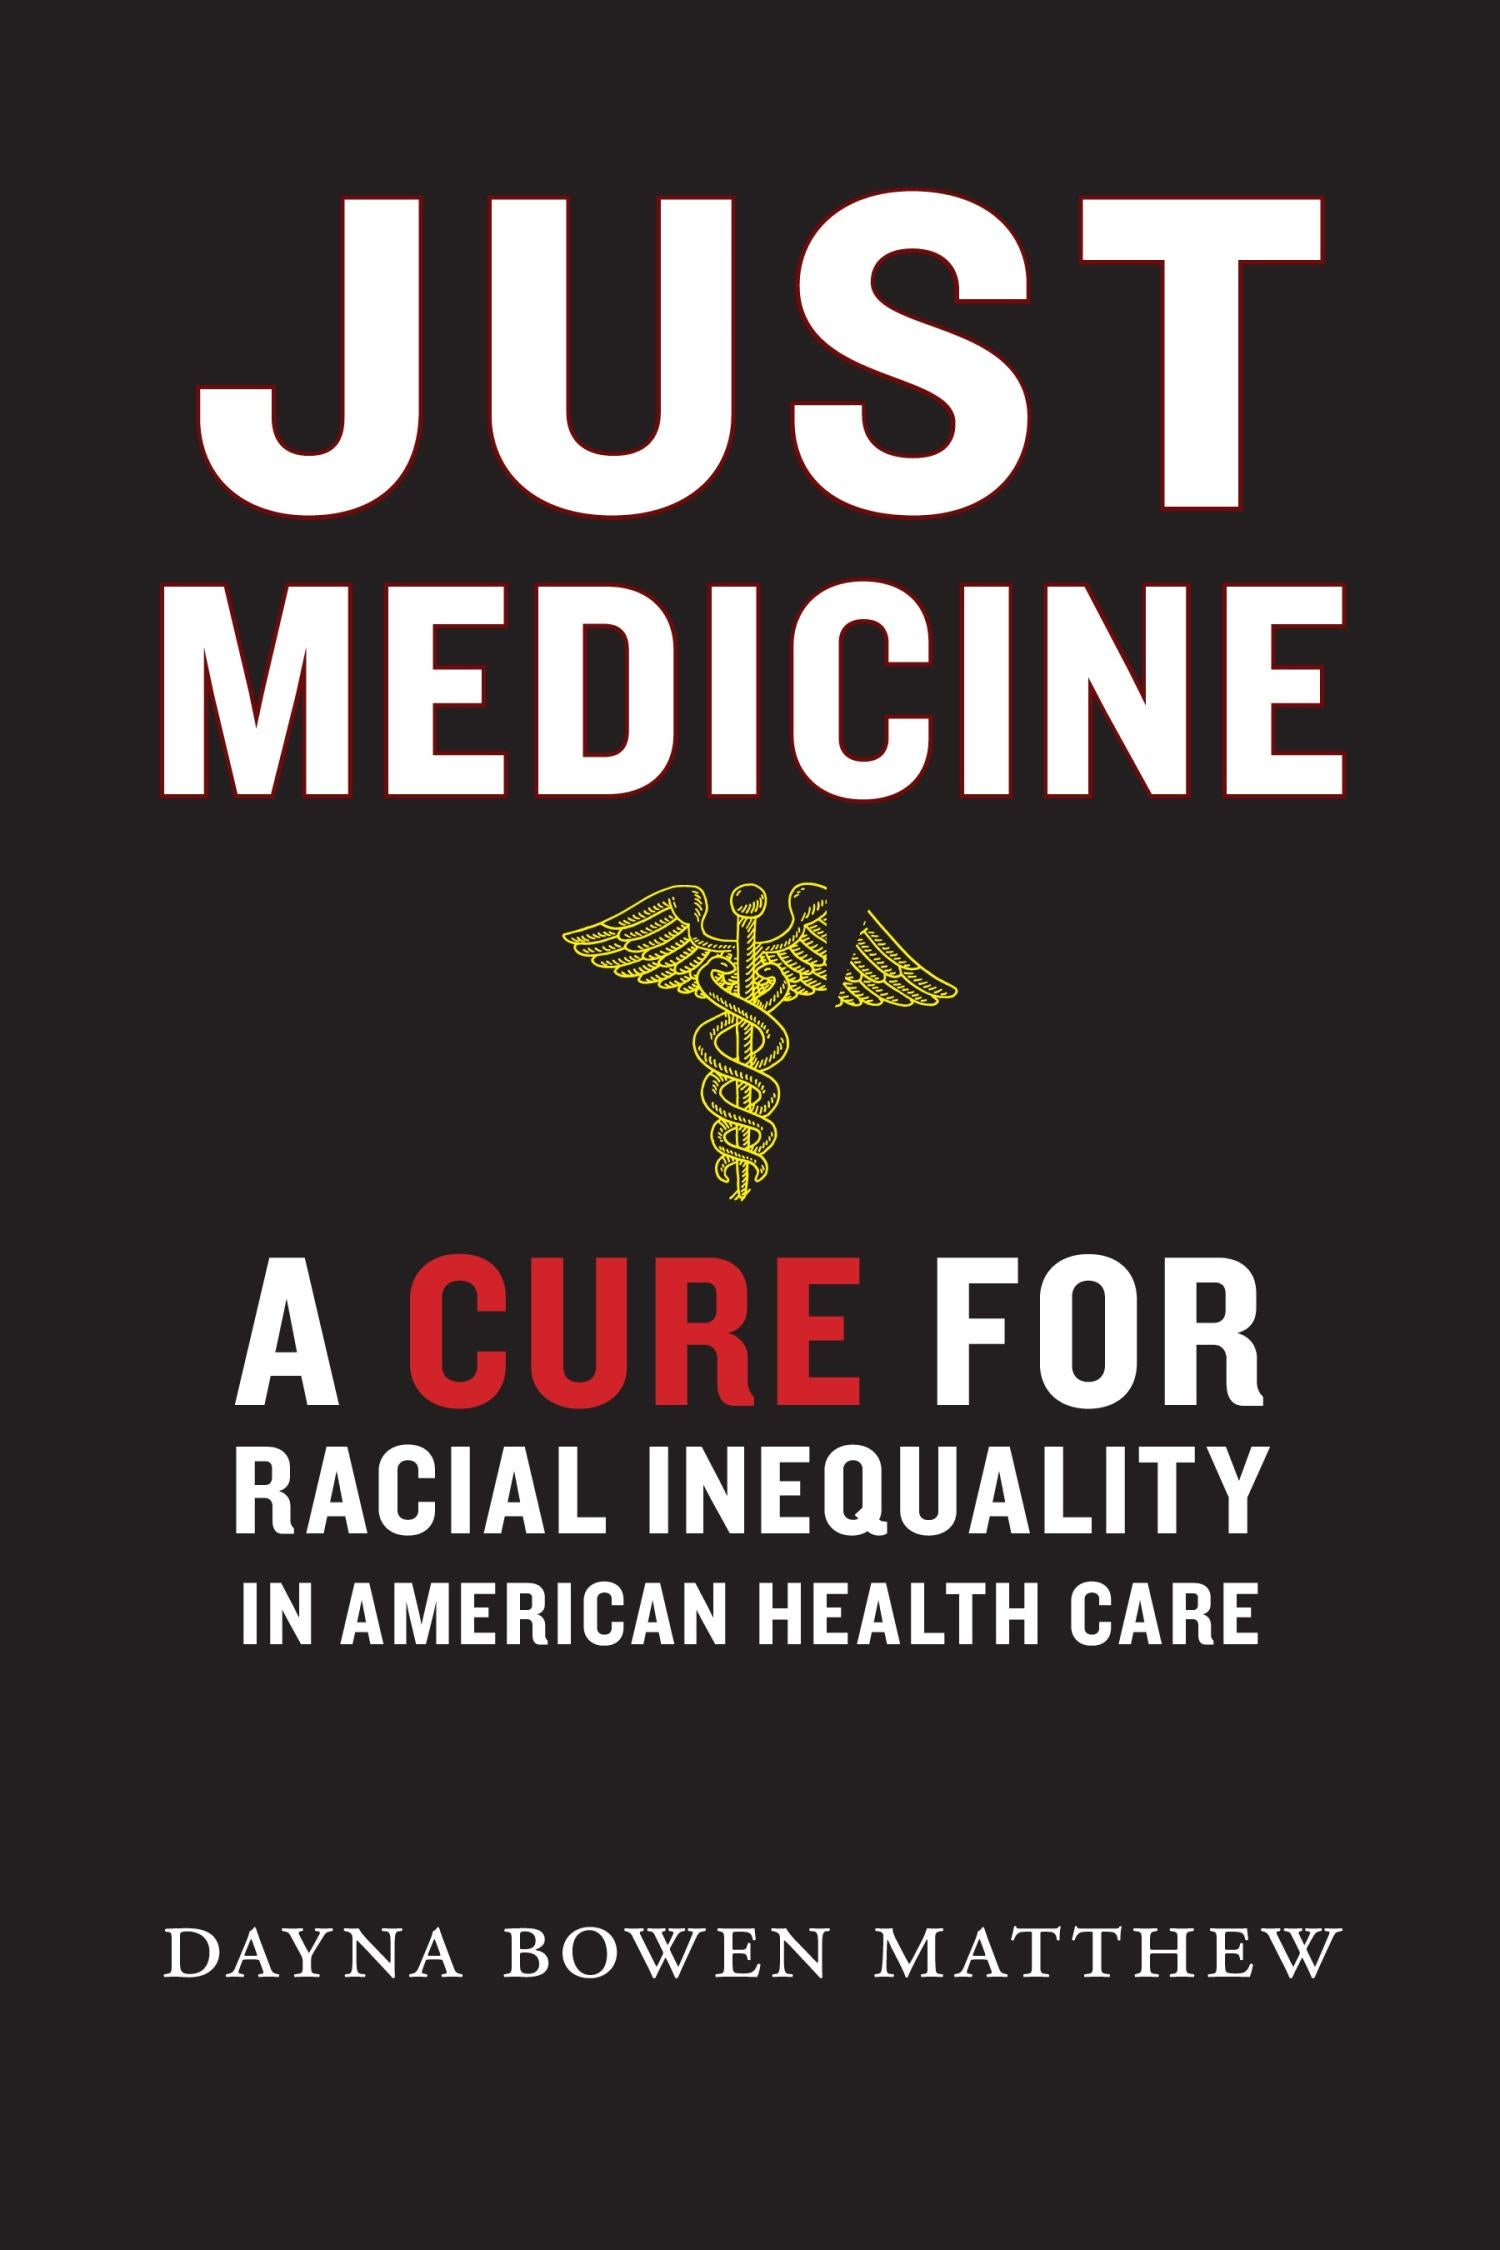 Just Medicine: A Cure for Racial Inequity in American Health Care